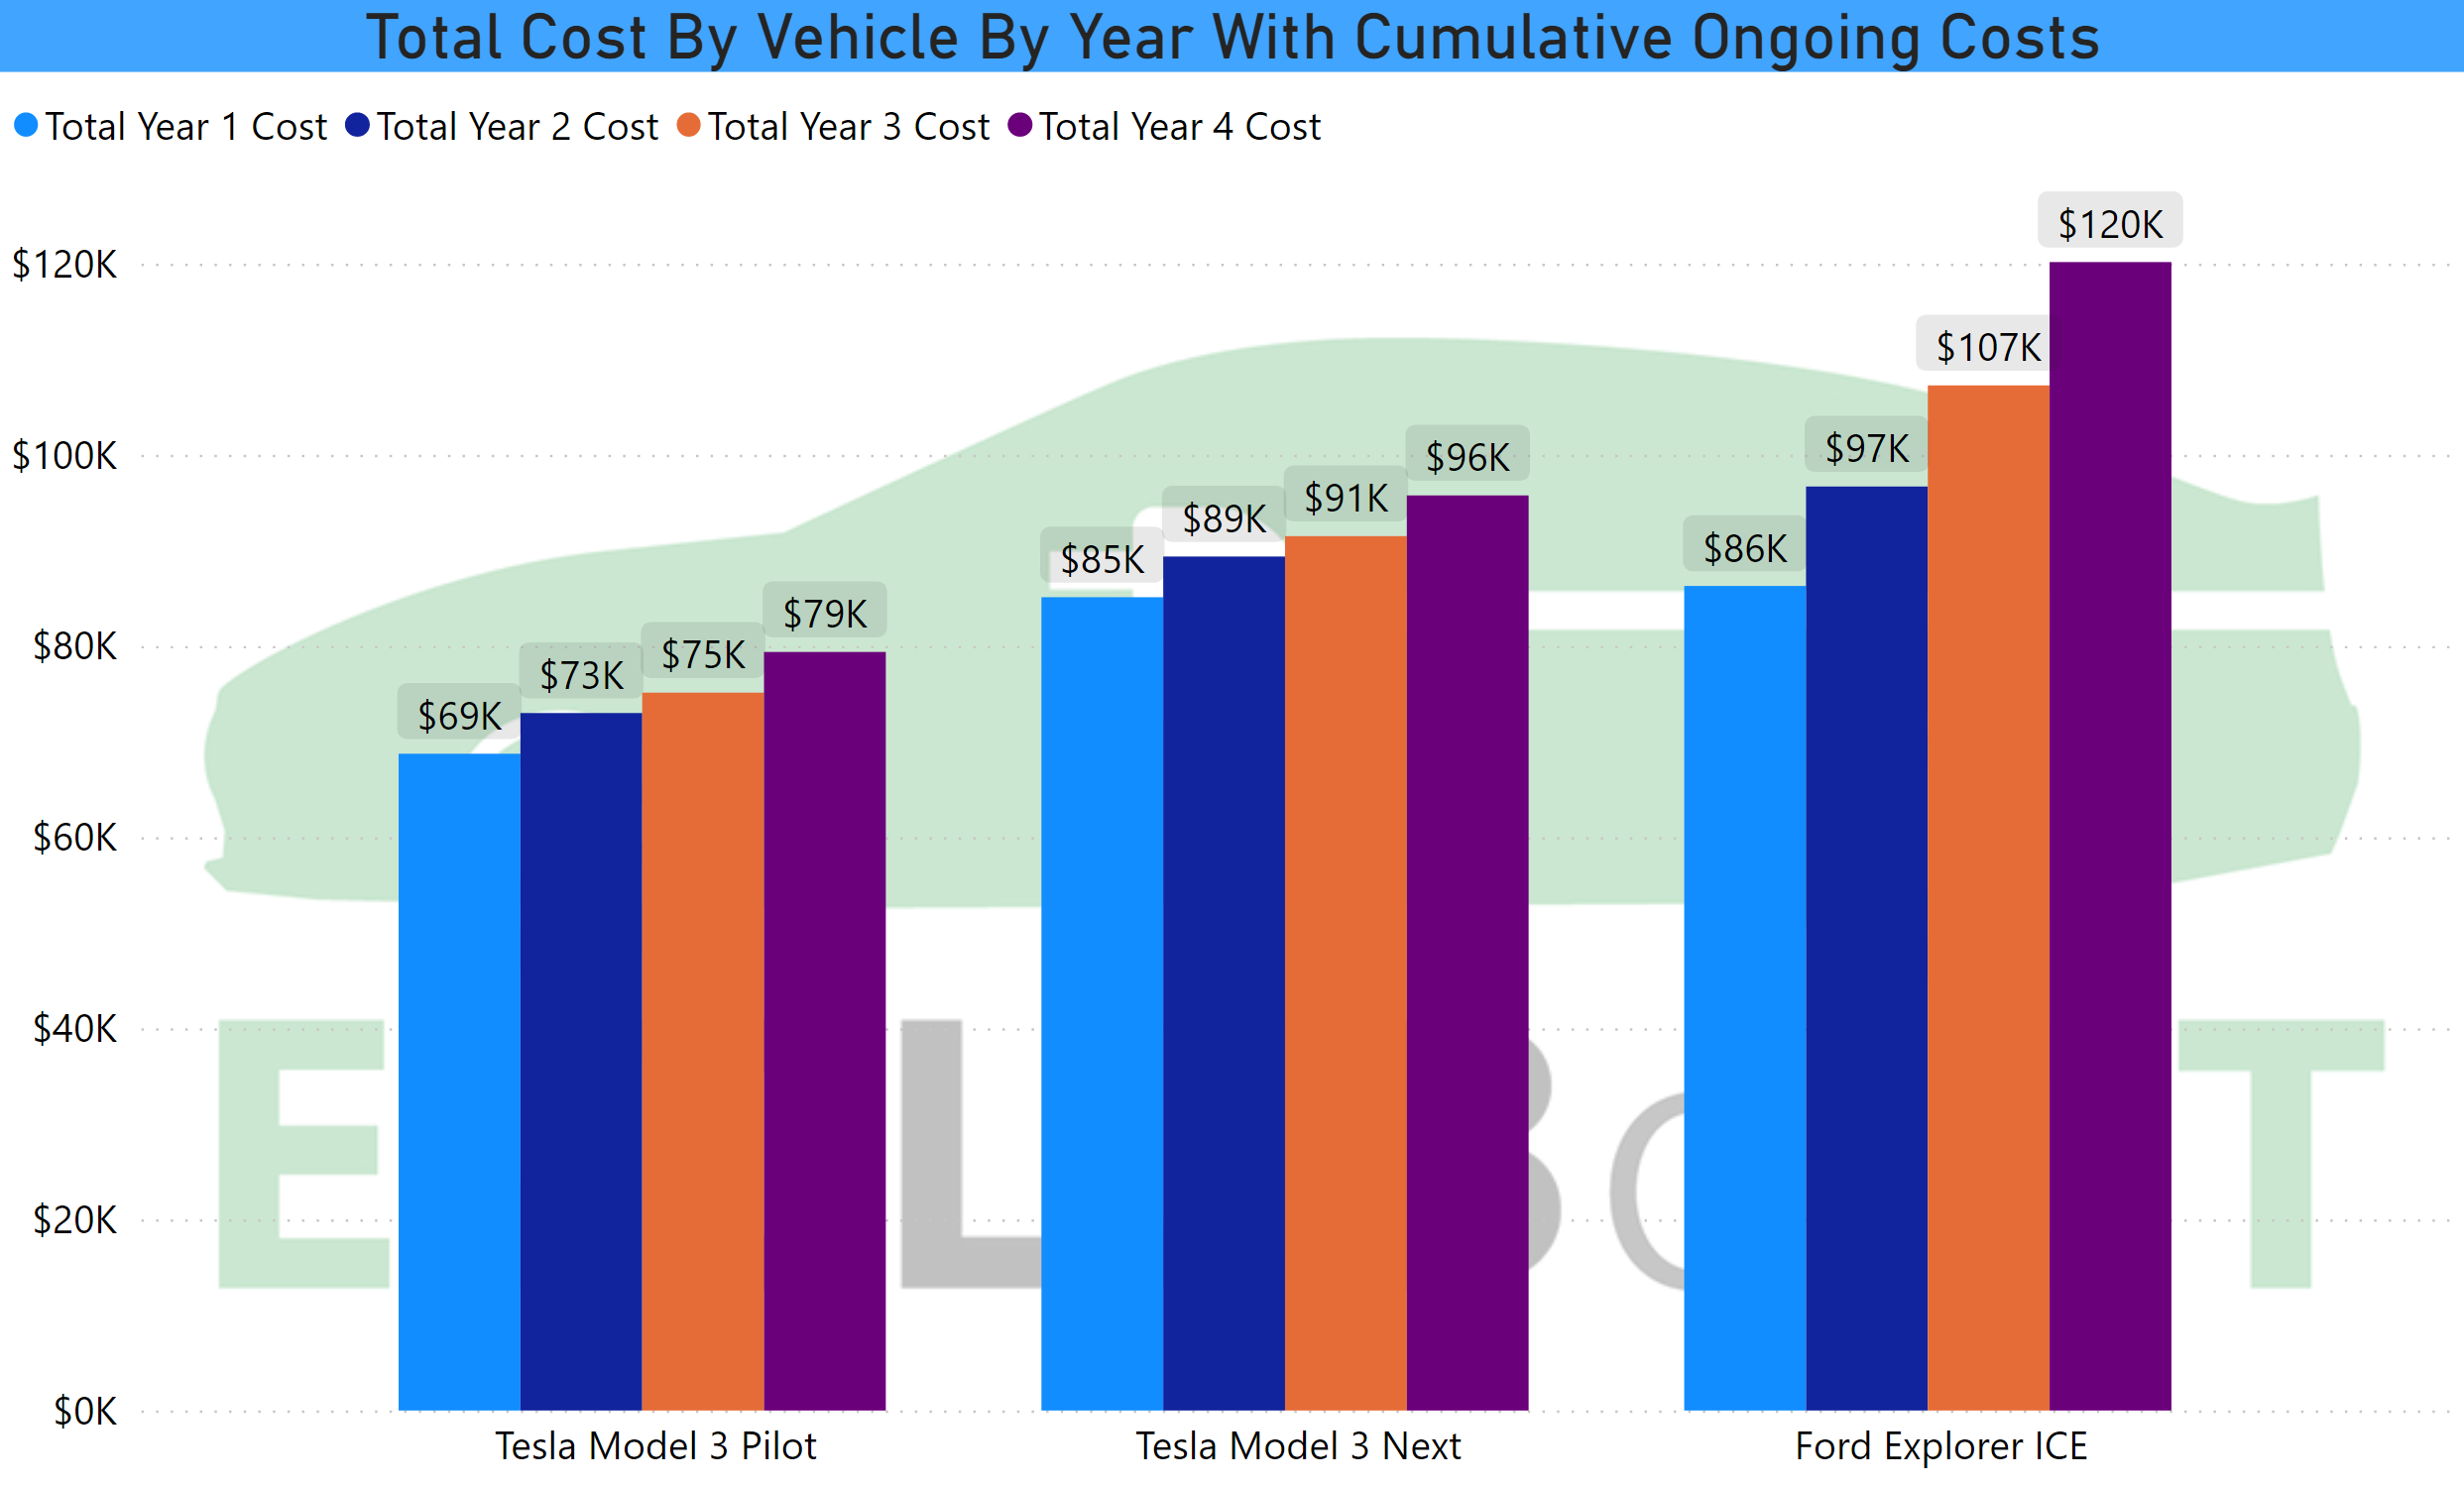 Total Cost by Vehicle Cash Basis